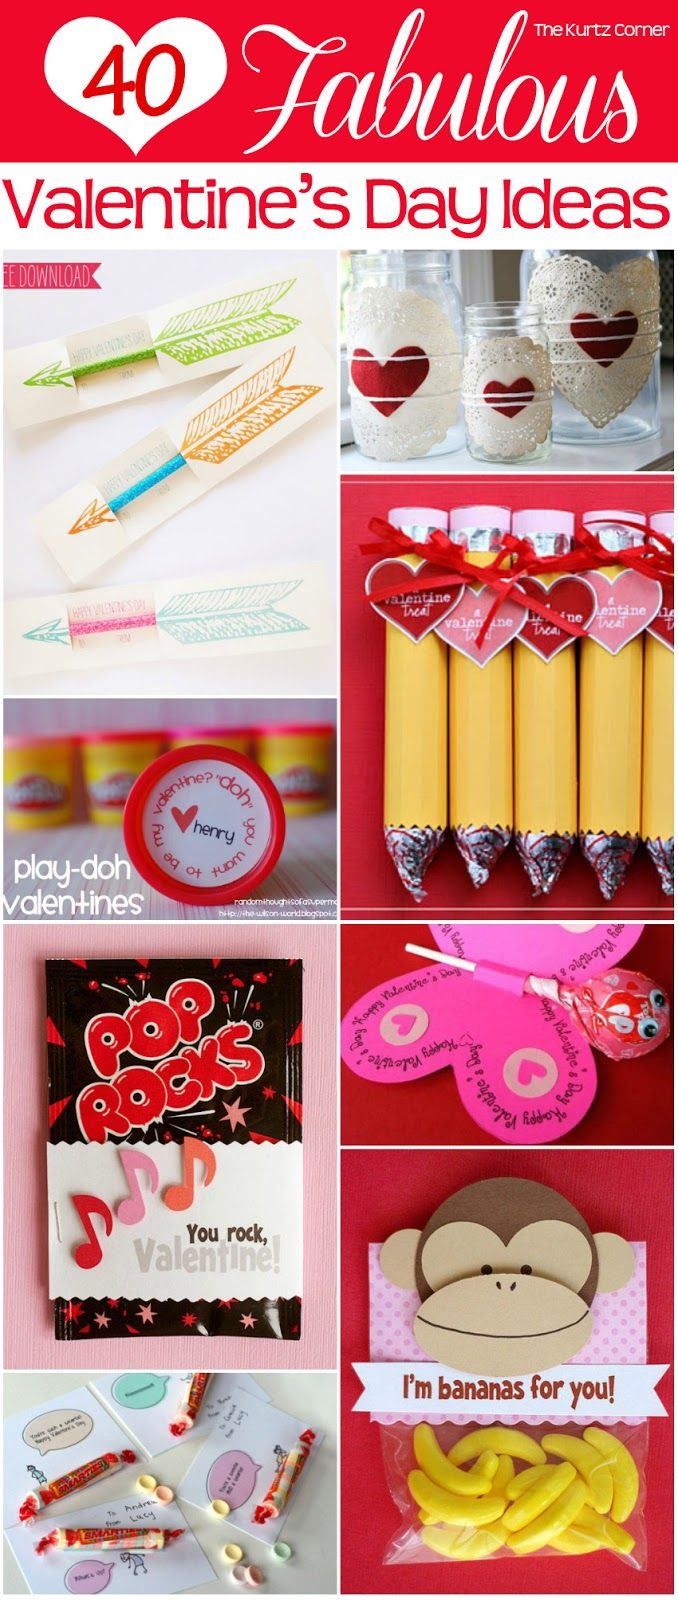 The Kurtz Corner: 40 Fabulous Valentine's Day Ideas